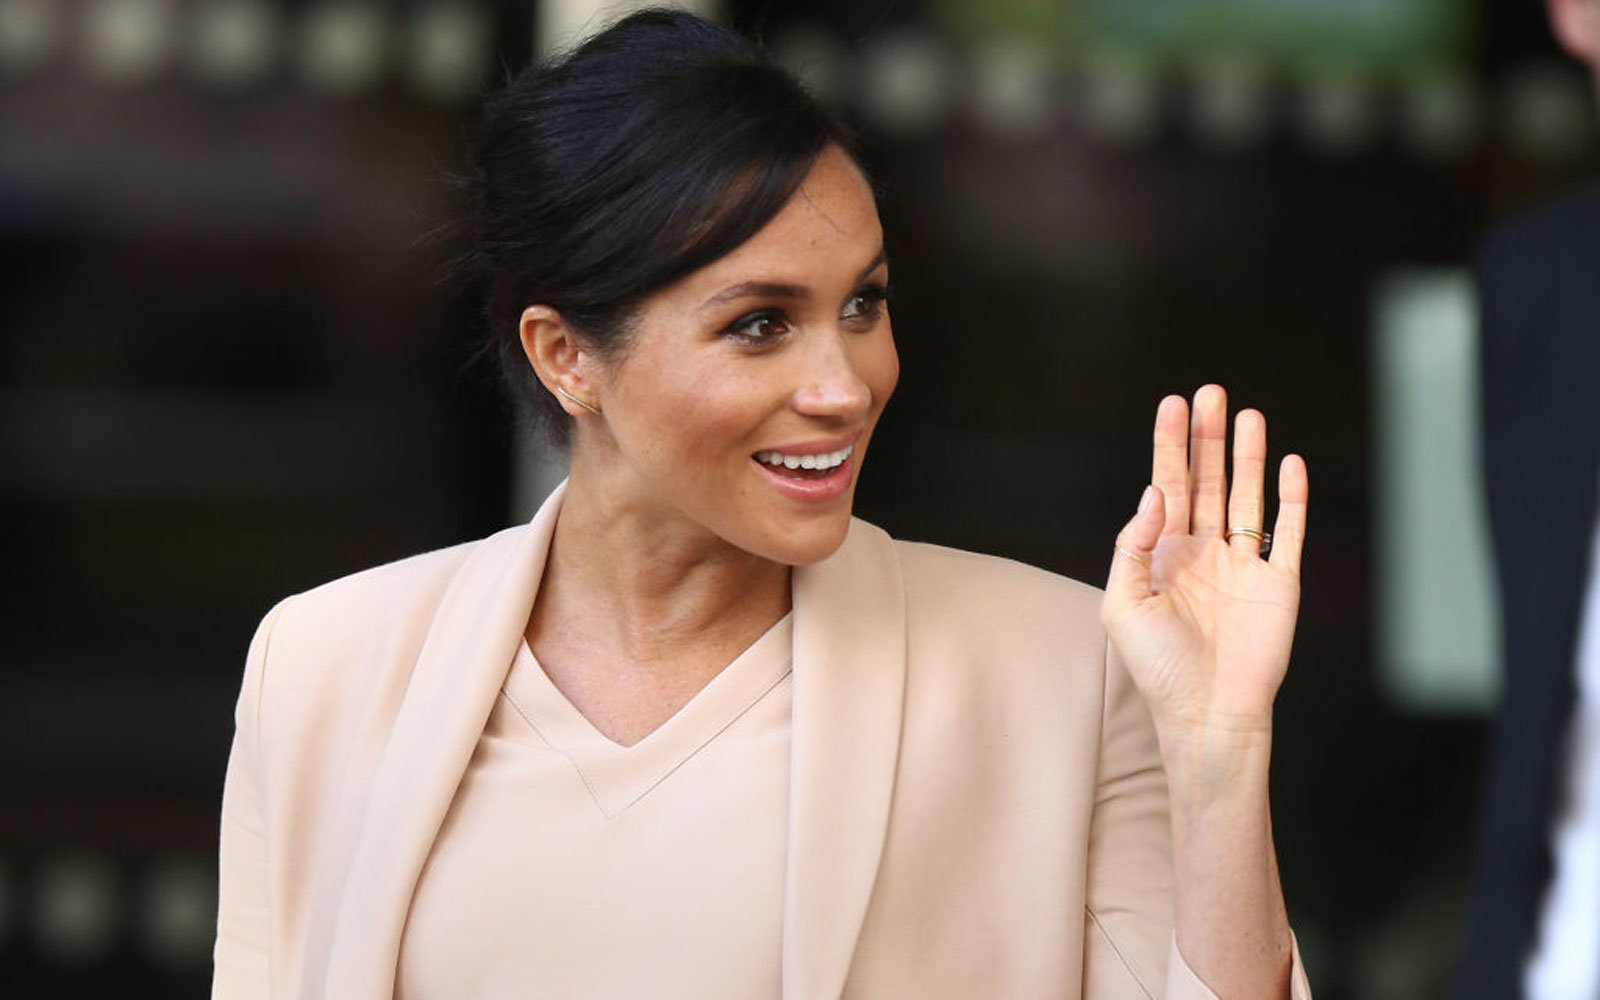 Royal charity split: Duke and Duchess of Sussex to leave Royal Foundation